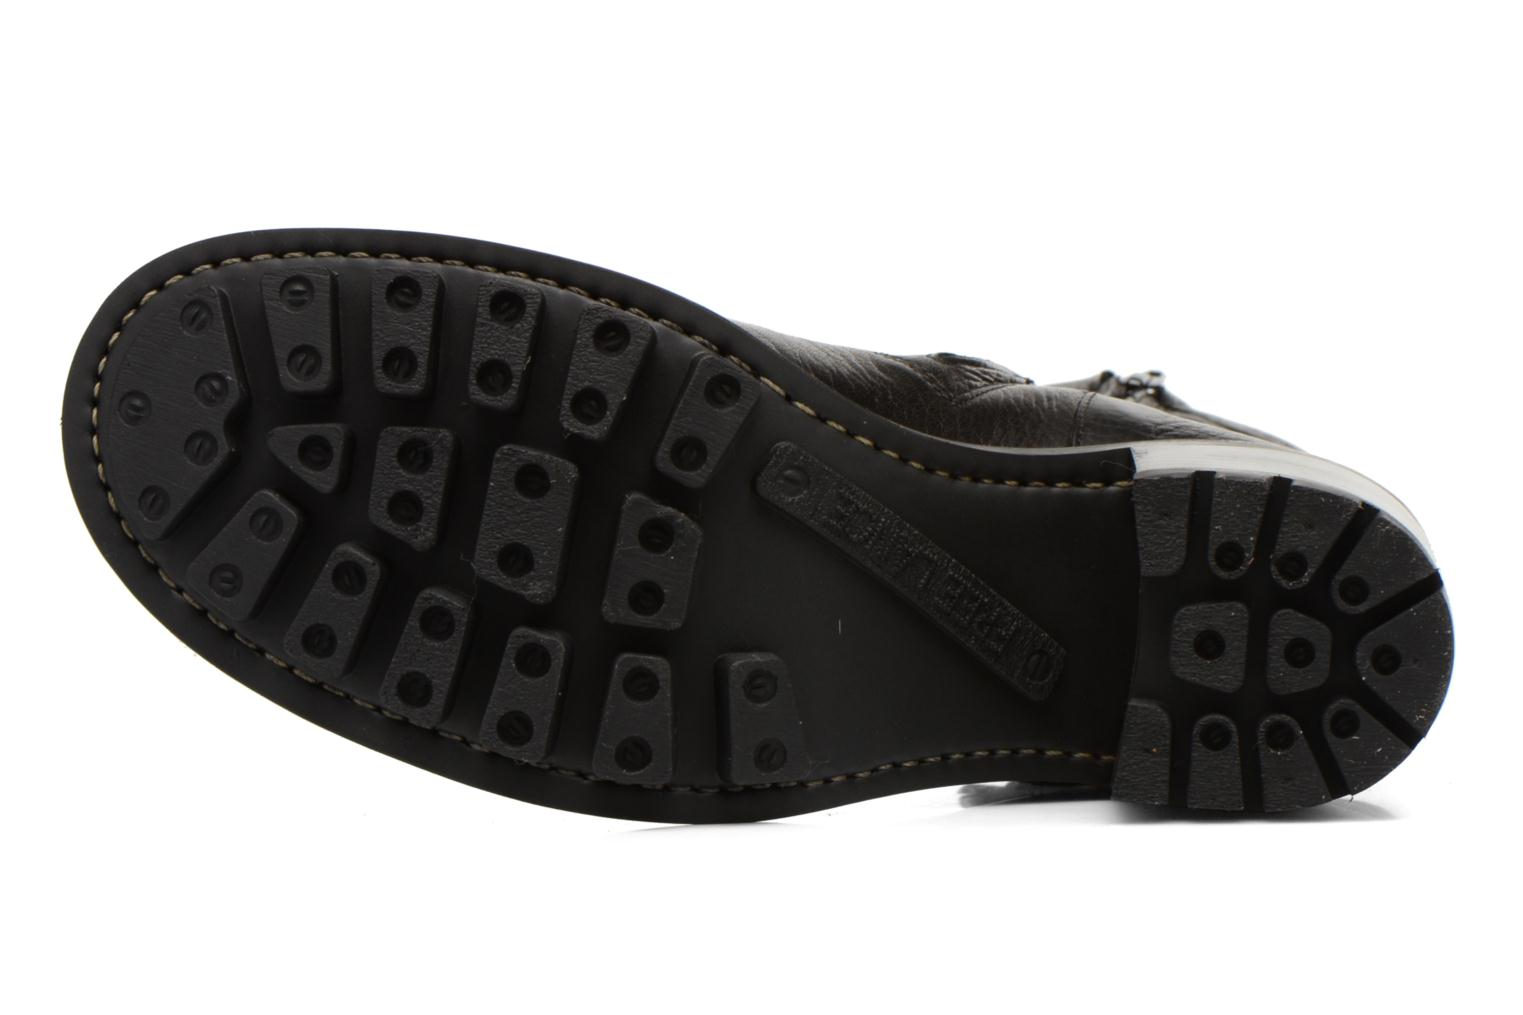 Justy 7 Small Gero Buckle Brado Noir